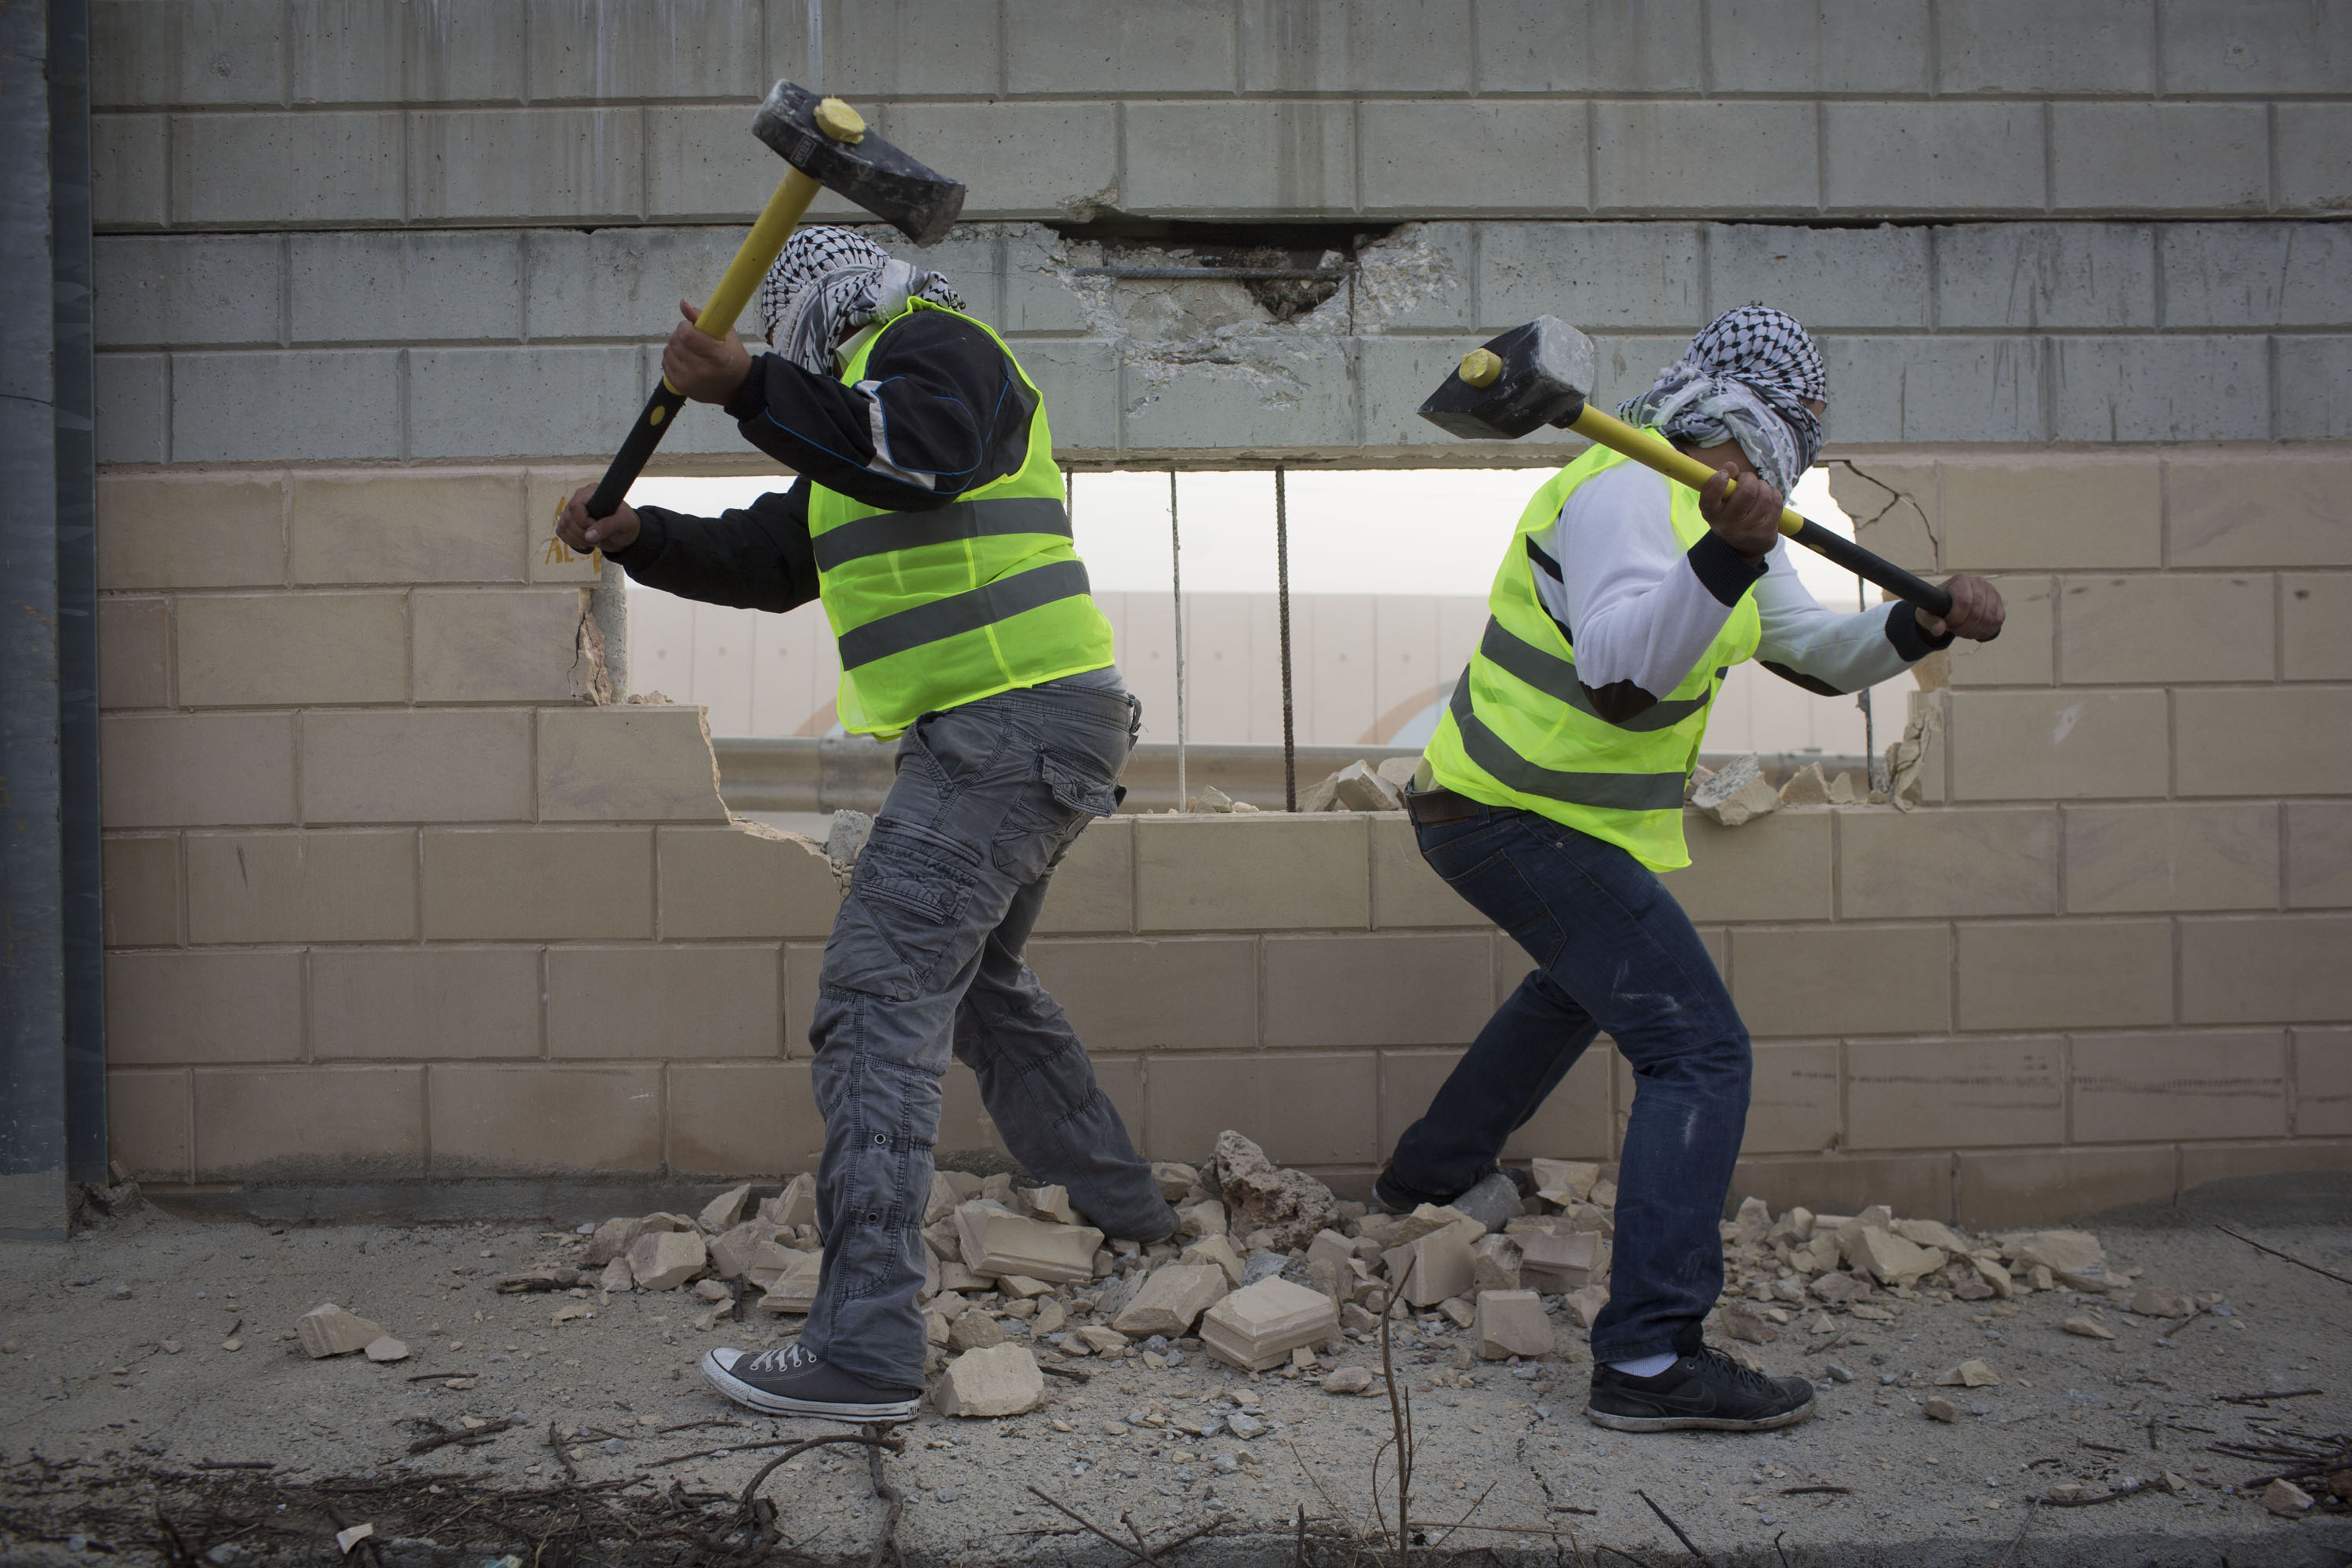 Palestinian activists destroyed part of the Separation Wall in the West Bank village of Bir Nabala, near Ramallah, November 15, 2013. (Photo by Oren Ziv/GroundTruth)